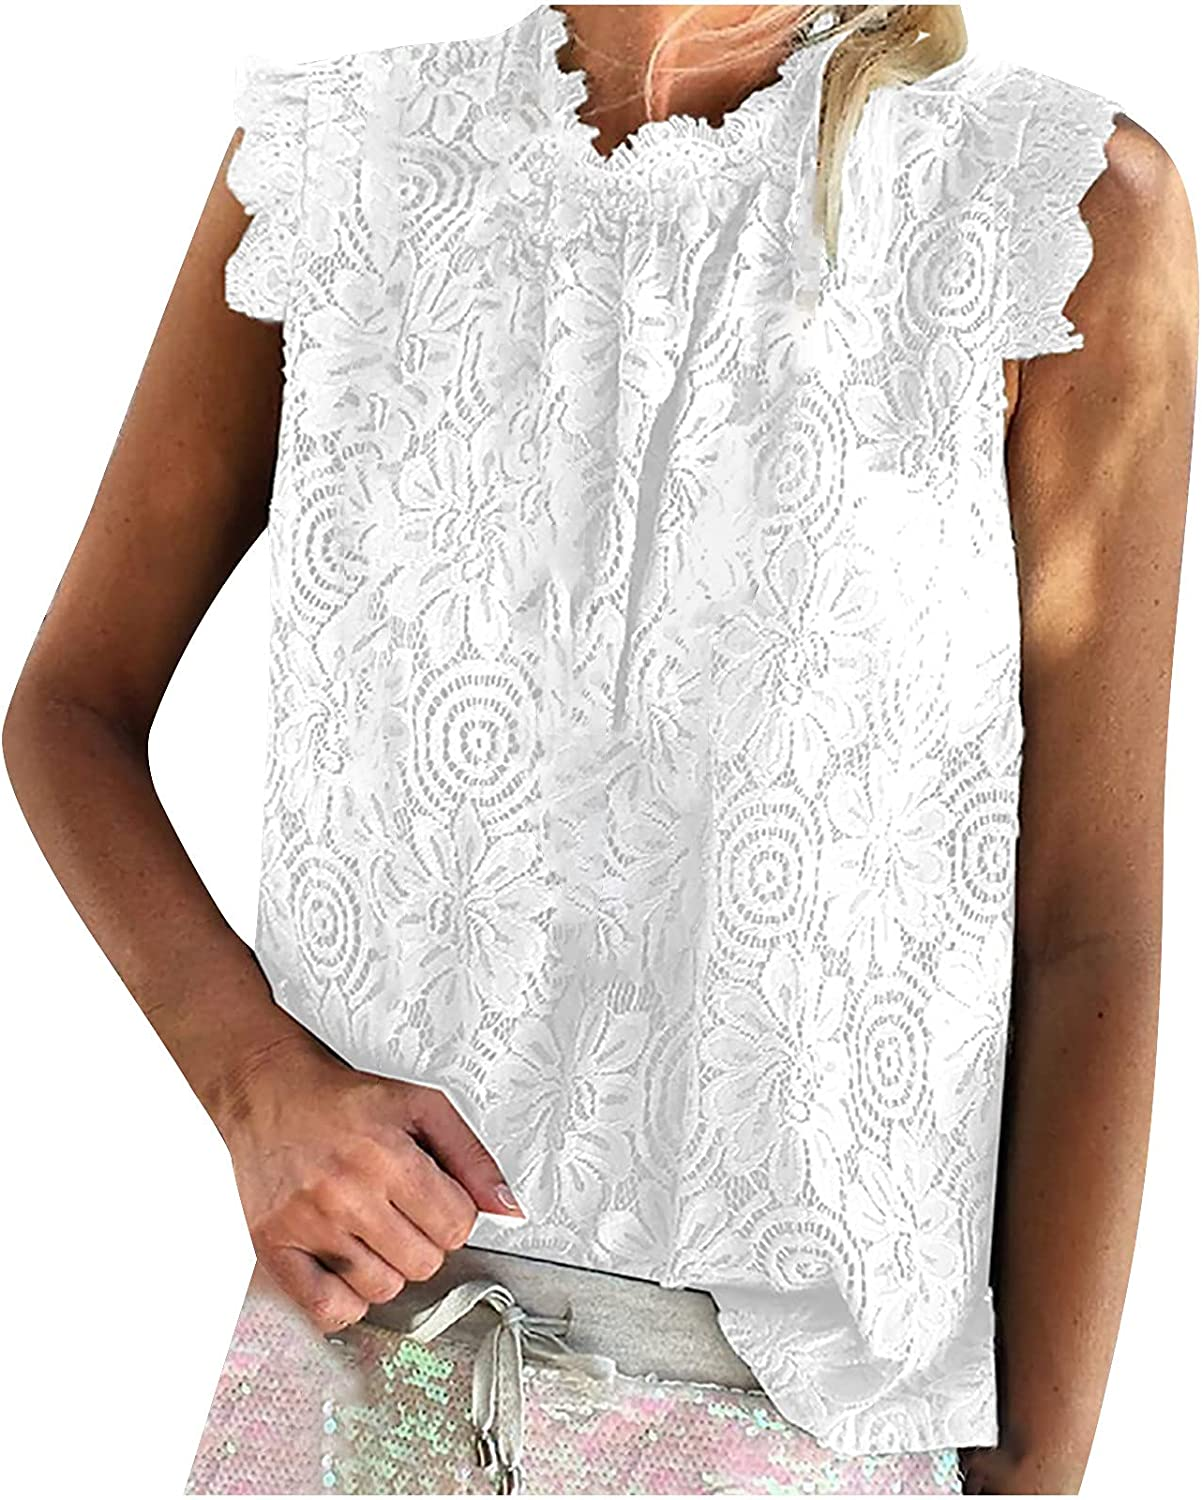 Plus Size T Shirts for Womens Summer, Fashion Women's Solid Casual Lace Hollow Out Sleeveless Sexy Vest Blouse